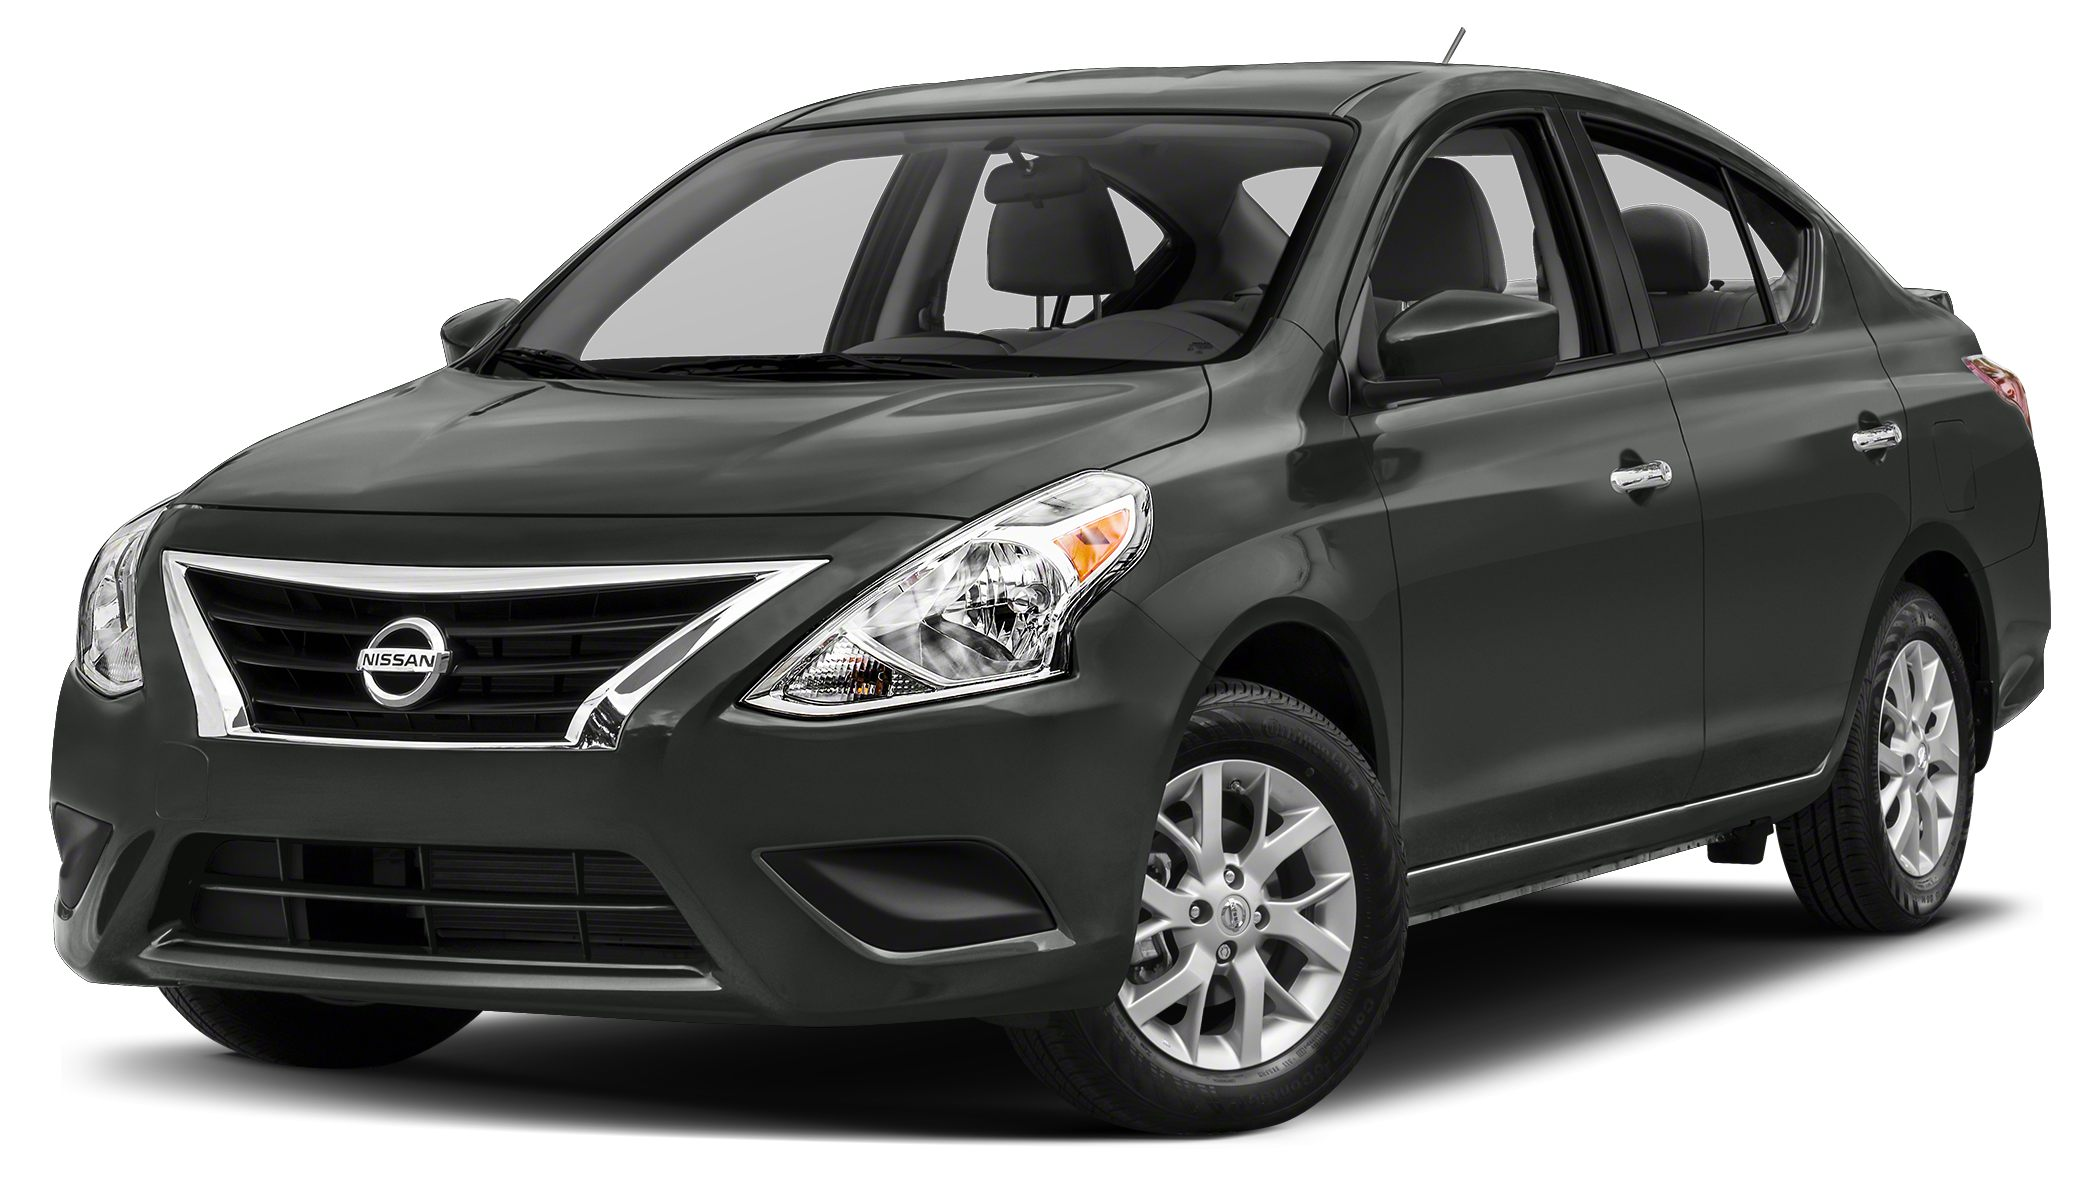 2016 Nissan Versa 16 SV New Arrival CARFAX 1-Owner -Only 3294 miles which is low for a 2016